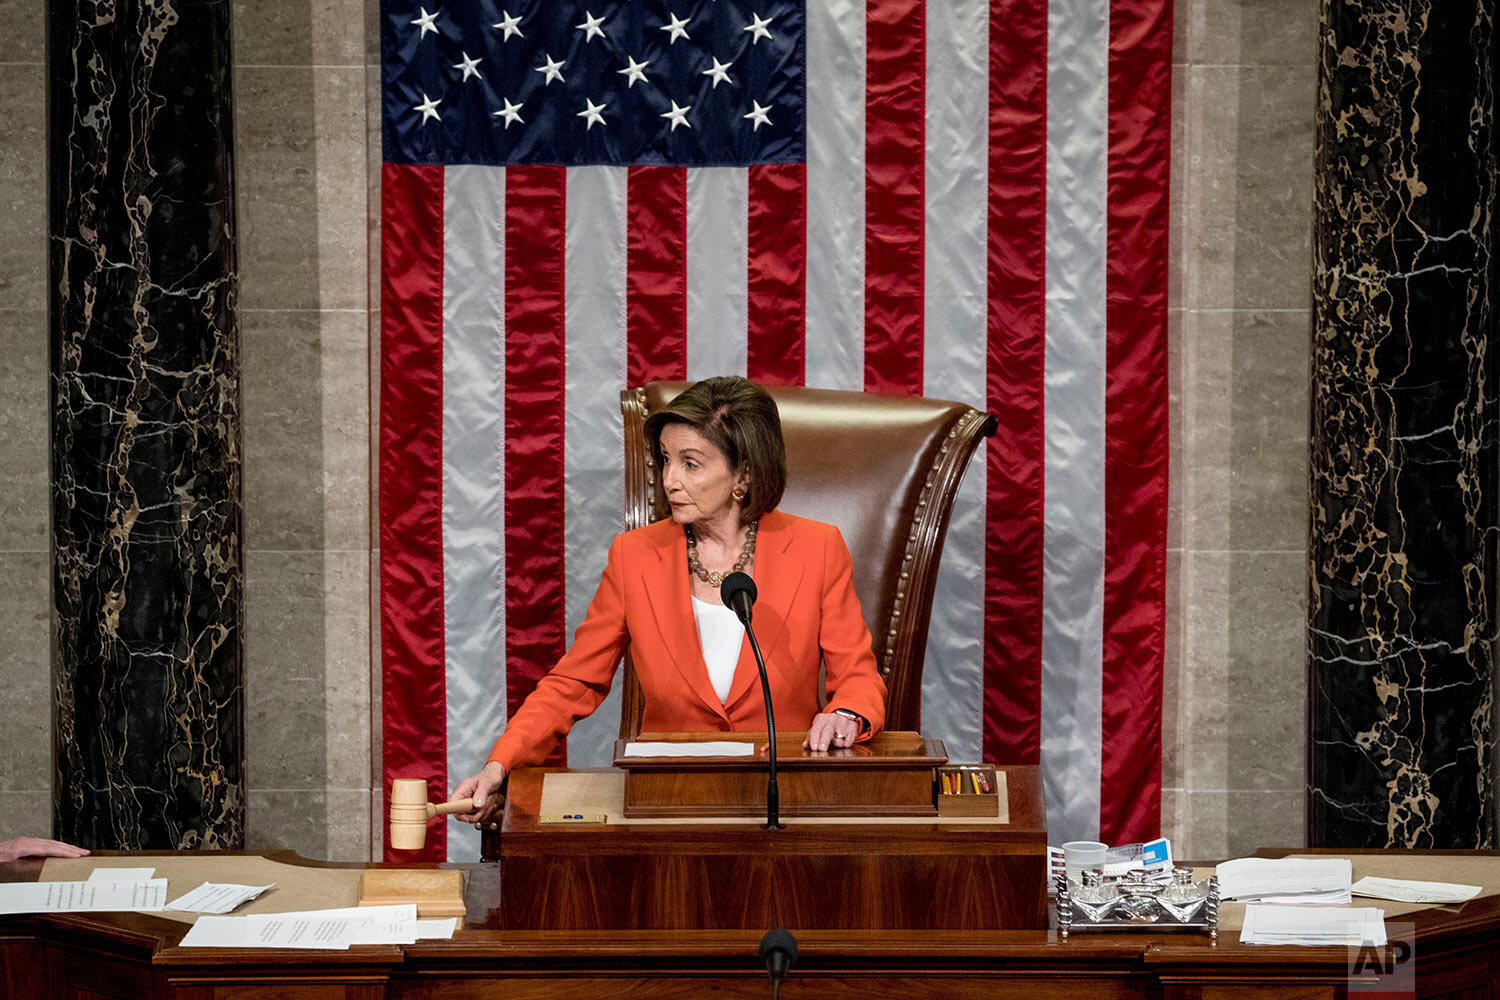 House Speaker Nancy Pelosi, D-Calif., gavels as the House votes 232-196 to pass a resolution on impeachment procedure to move forward into the next phase of the impeachment inquiry into President Donald Trump in the House Chamber on Capitol Hill in Washington, Thursday, Oct. 31, 2019. The resolution would authorize the next stage of impeachment inquiry into the president, including establishing the format for open hearings, giving the House Committee on the Judiciary the final recommendation on impeachment, and allowing Trump and his lawyers to attend events and question witnesses. (AP Photo/Andrew Harnik)